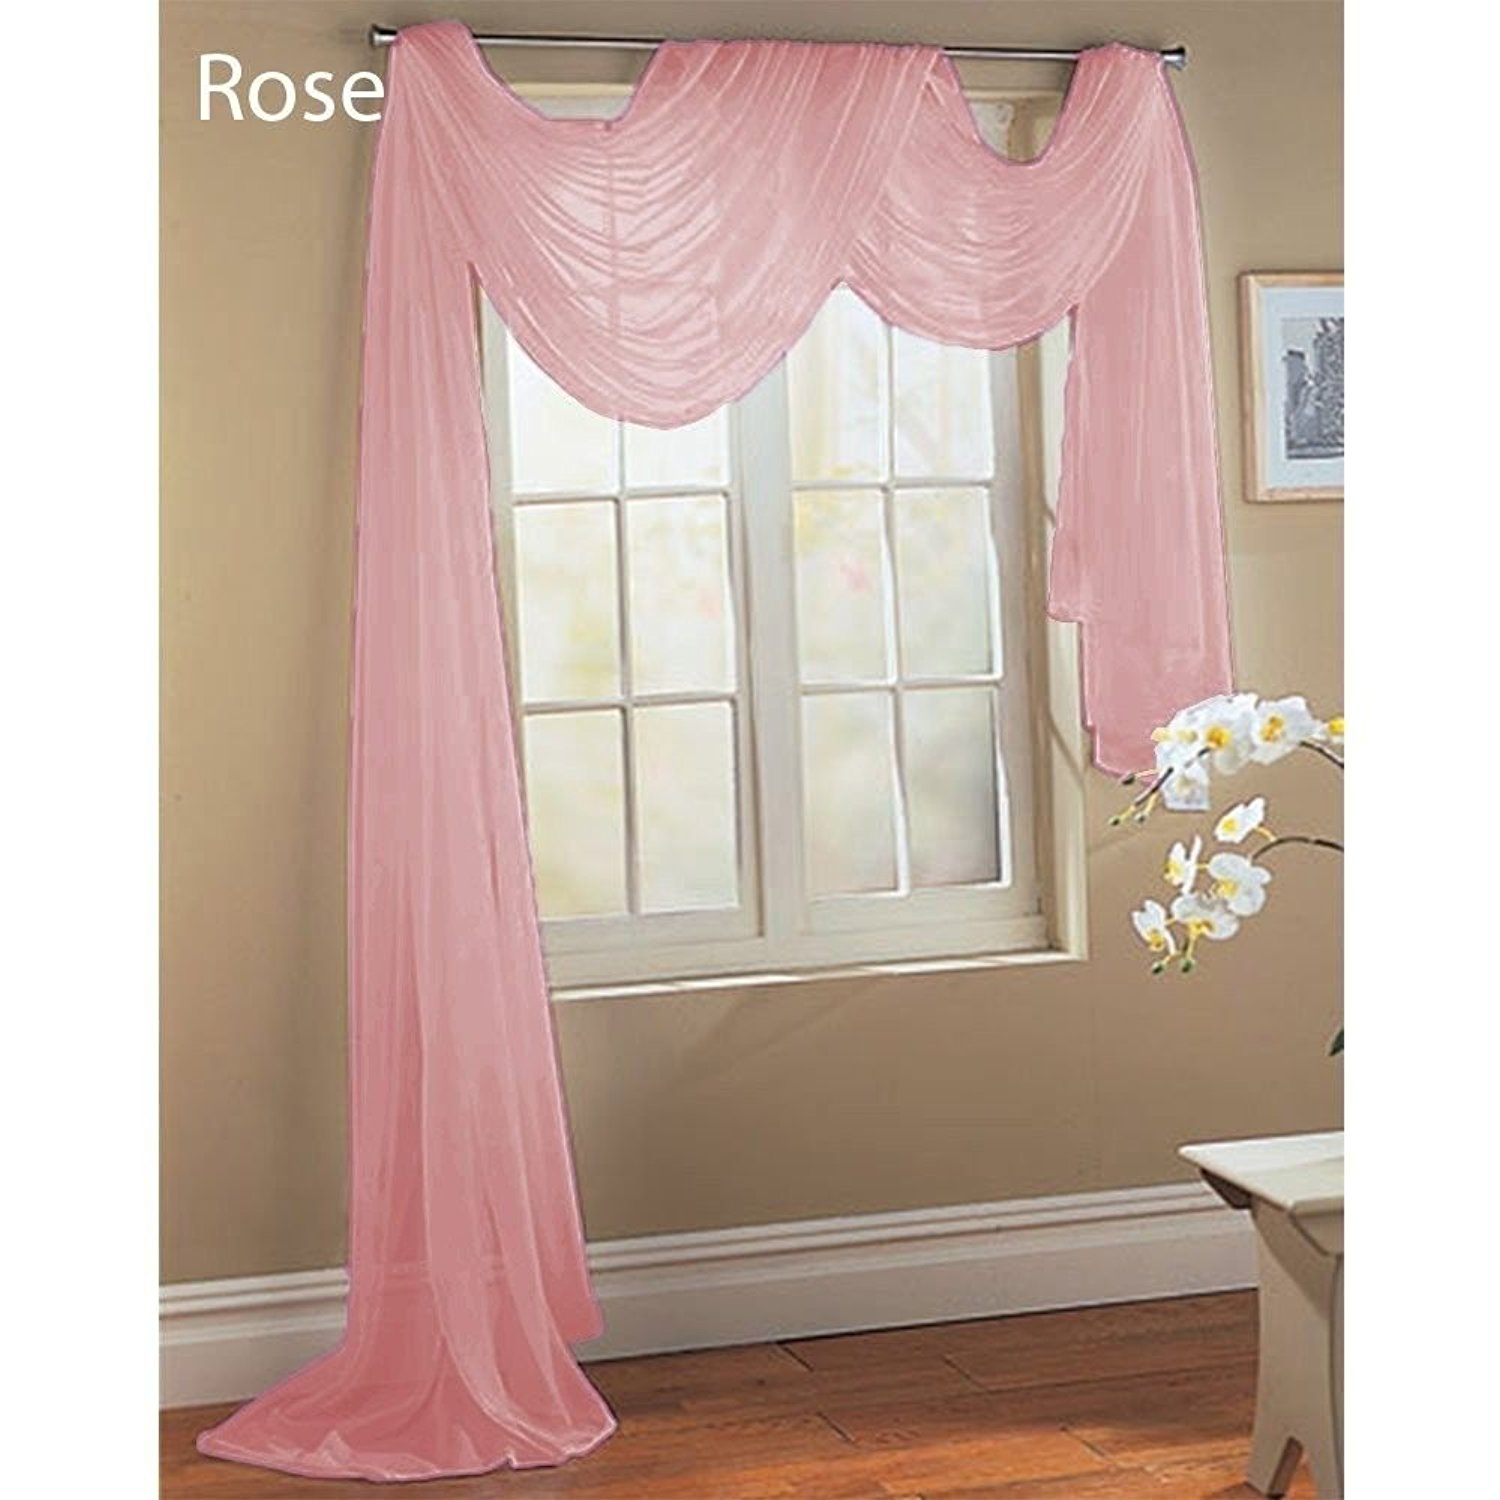 Buy Rose Baby Pink Scarf Sheer Voile Window Treatment Curtain Drapes